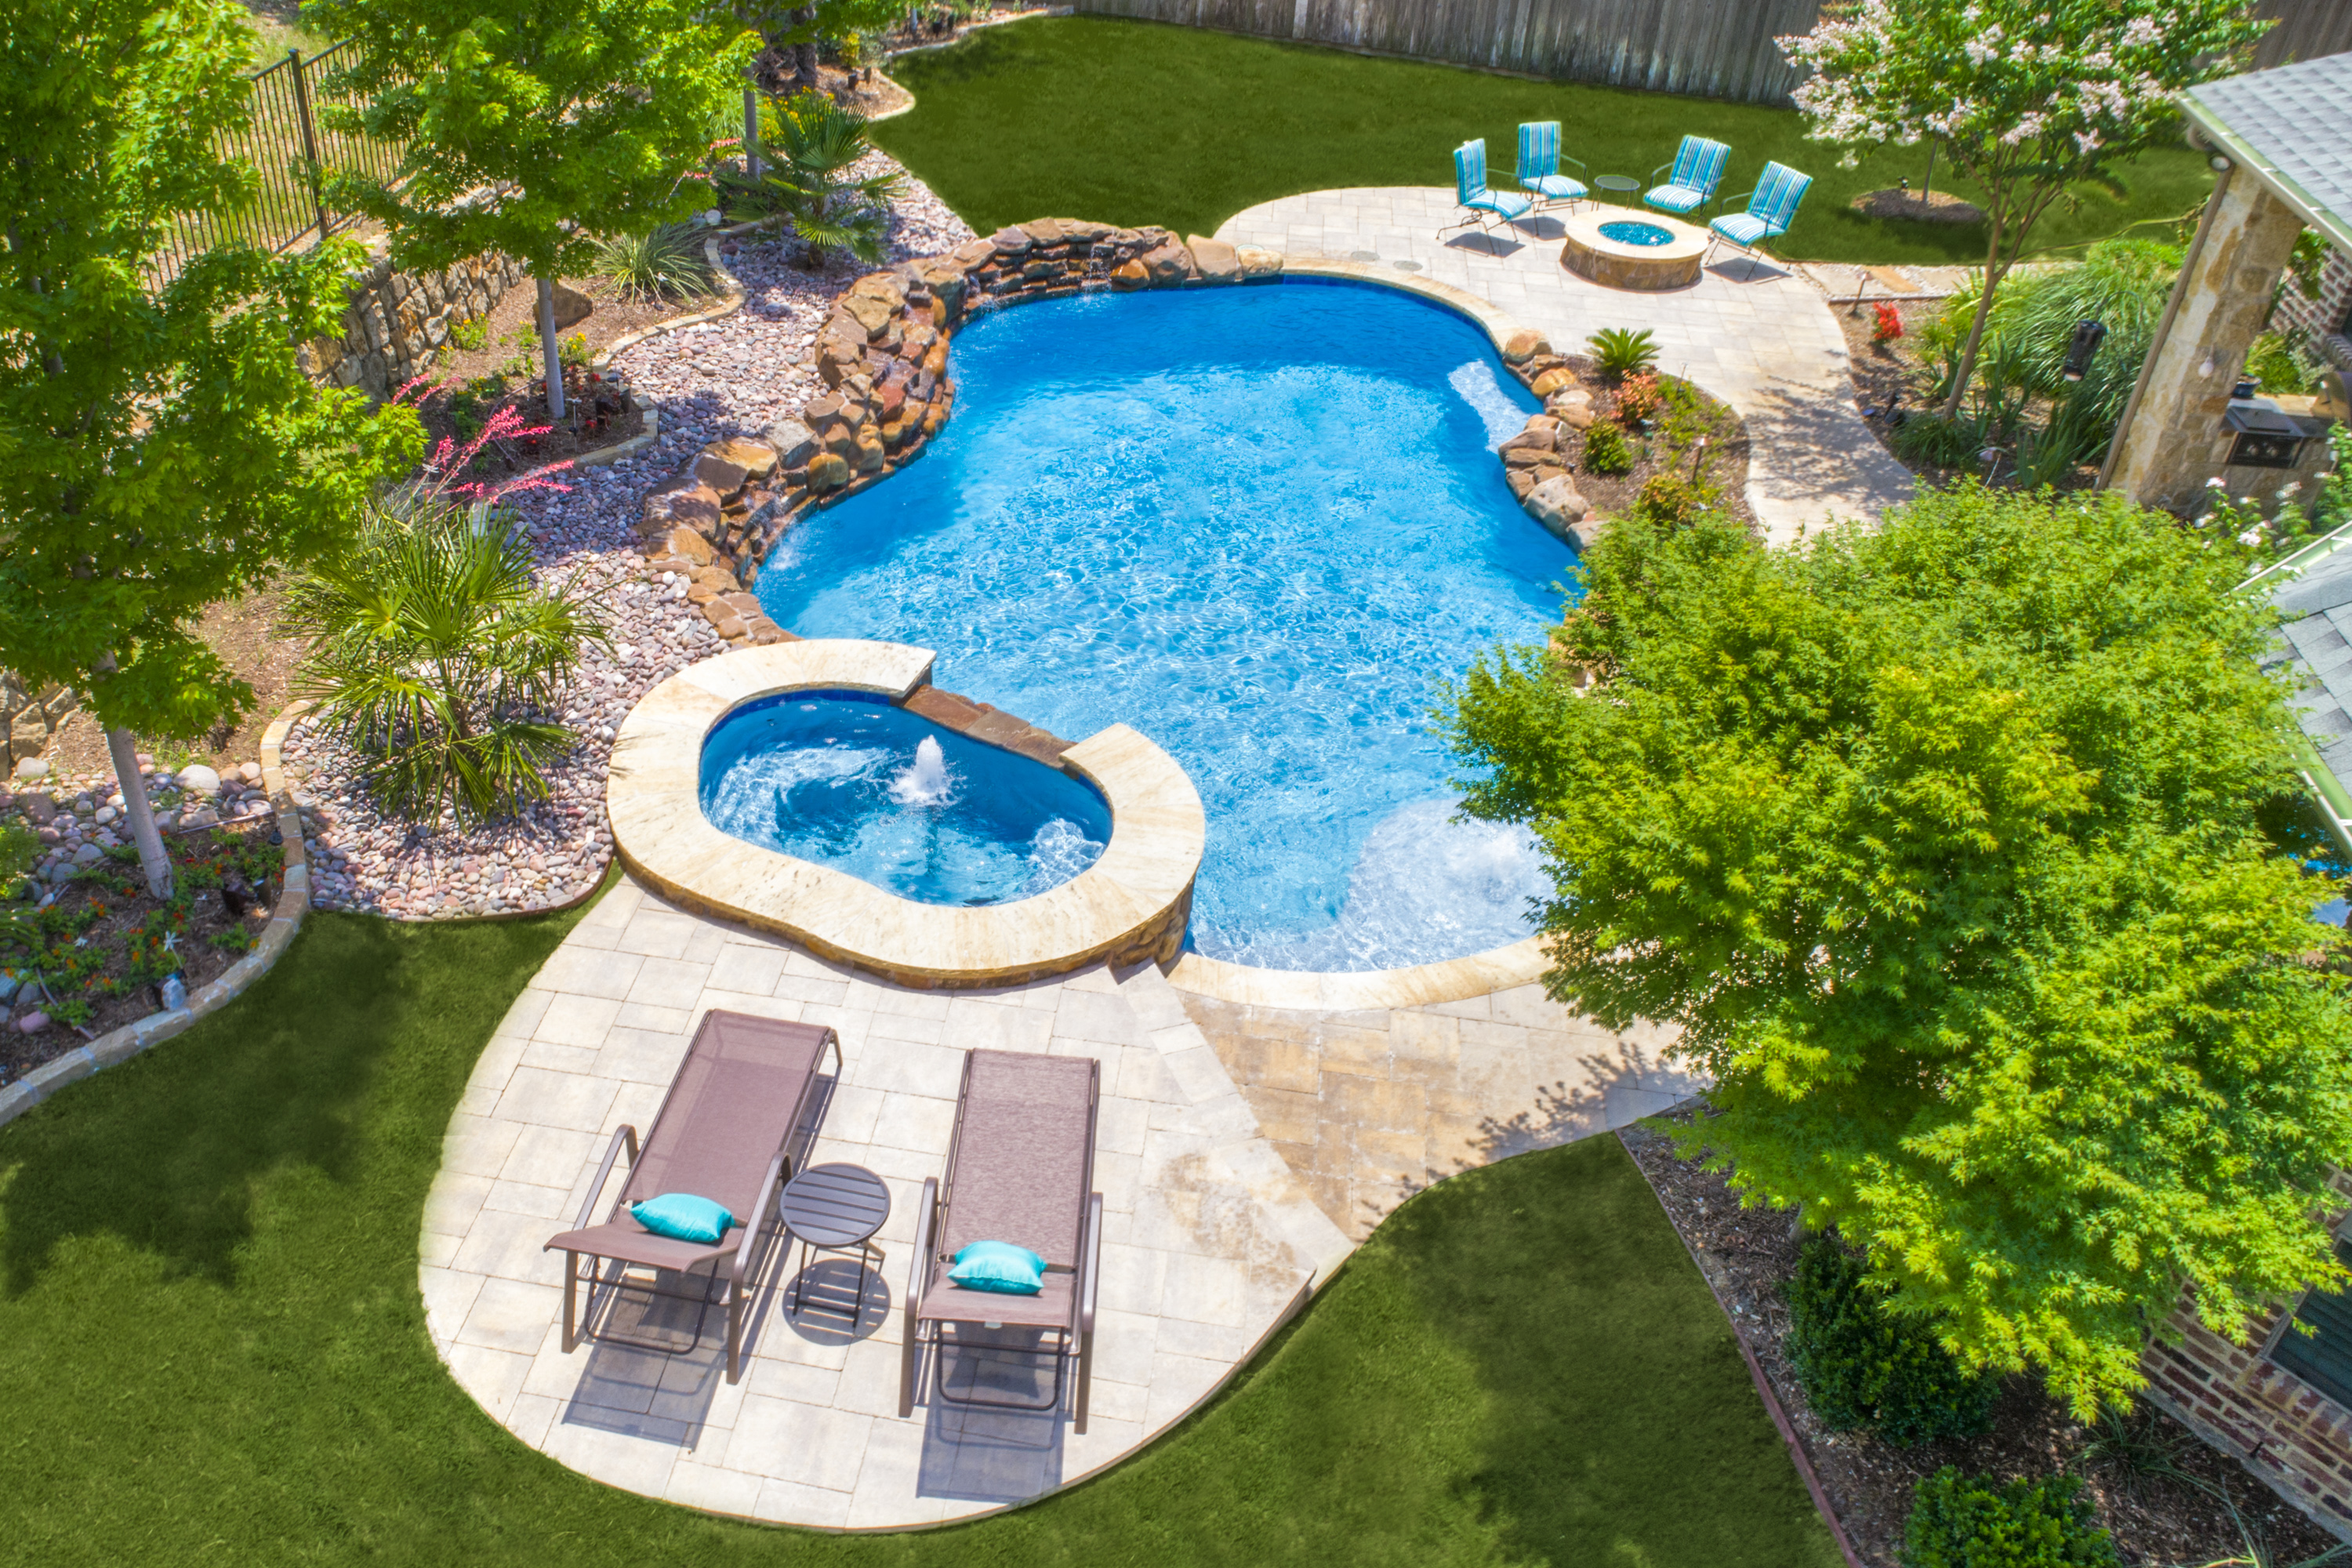 Gold_Medal_Pools-Residential_Pool_Free_Form_Style-Plano-TX-11